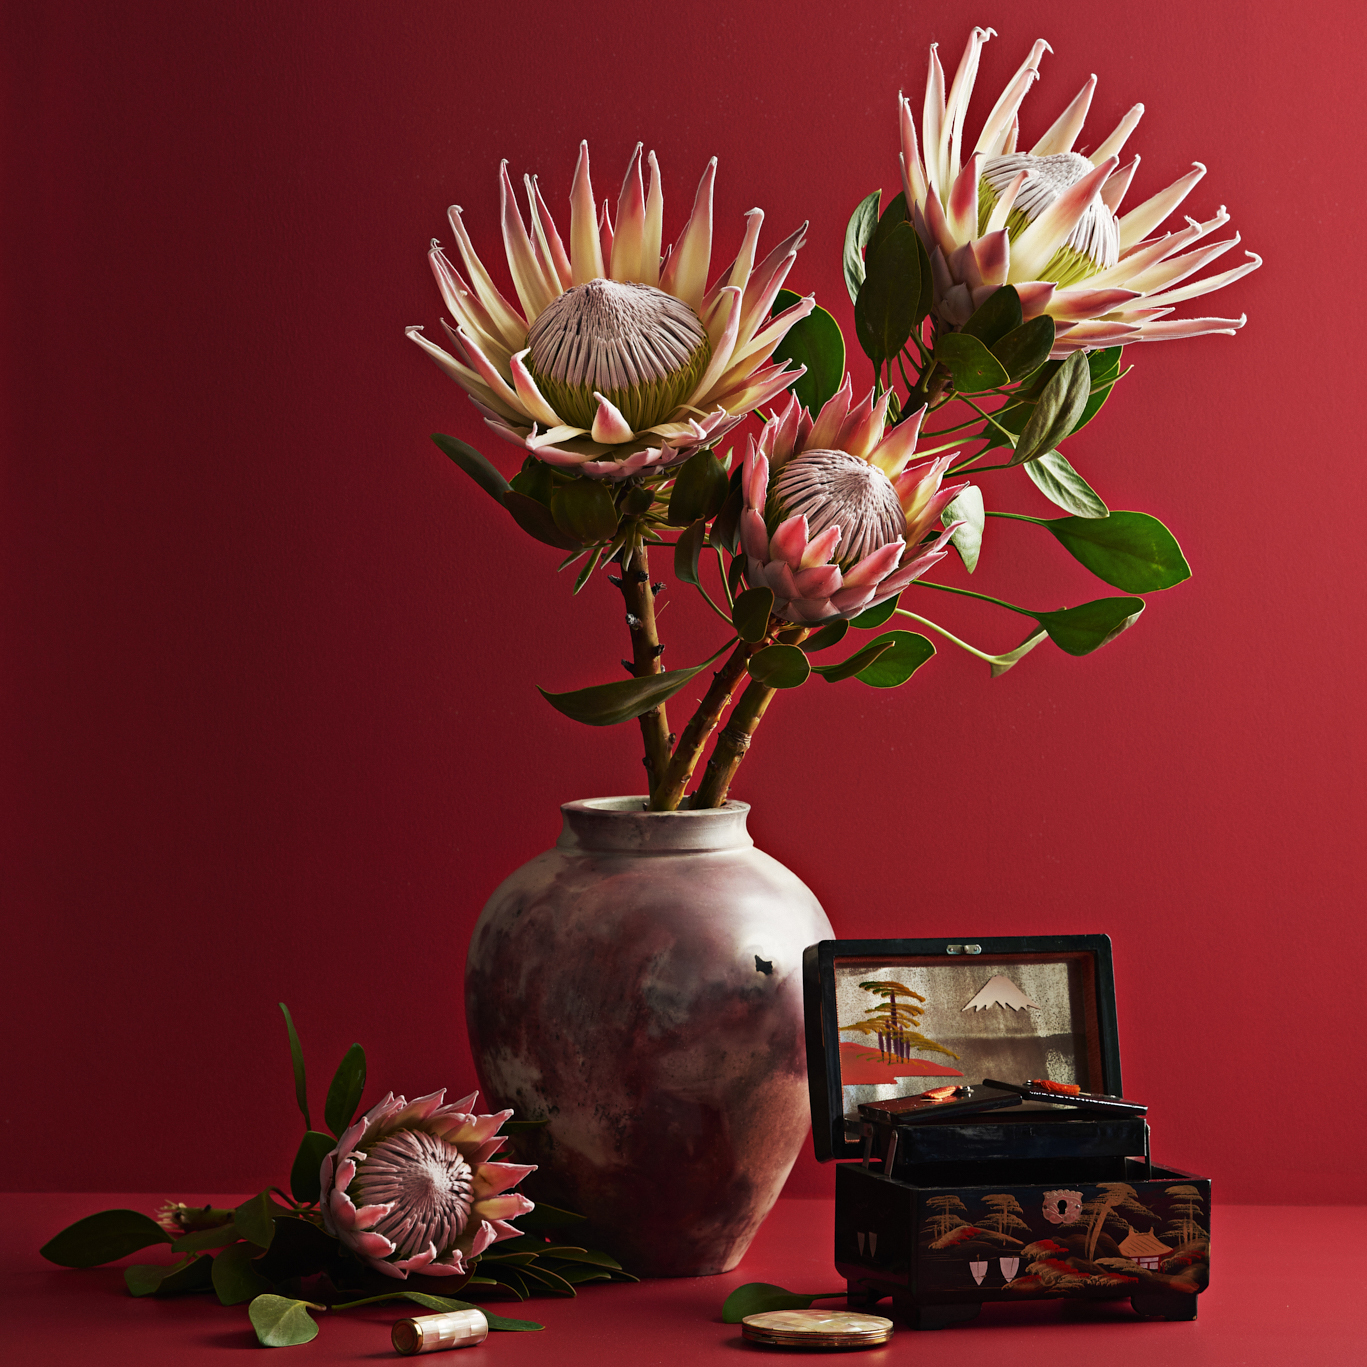 Evie Kemp for NZ Flowers Week 2018  As an ambassador for NZ Flowers Week 2018, Evie styled a series of images in collaboration with Dulux and United Flower Growers to champion and celebrate specific locally grown blooms.